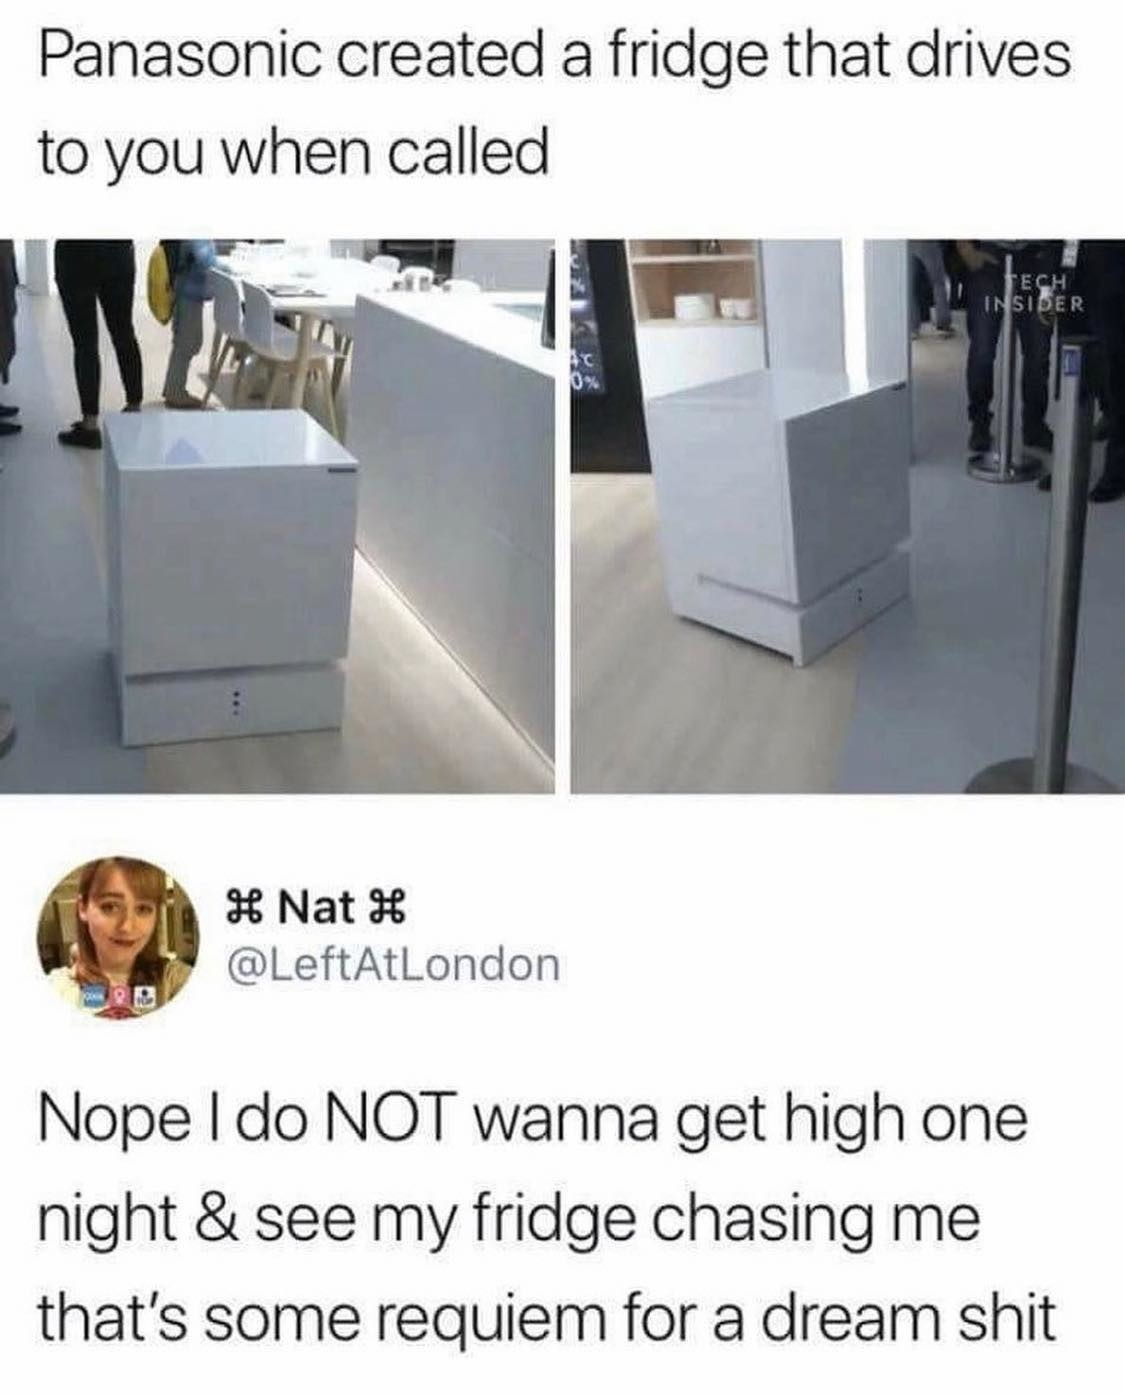 Tweet that reads Panasonic created a fridge that drives to you when called and a response that says nope i do not wanna get high one night and see my fridge chasing me